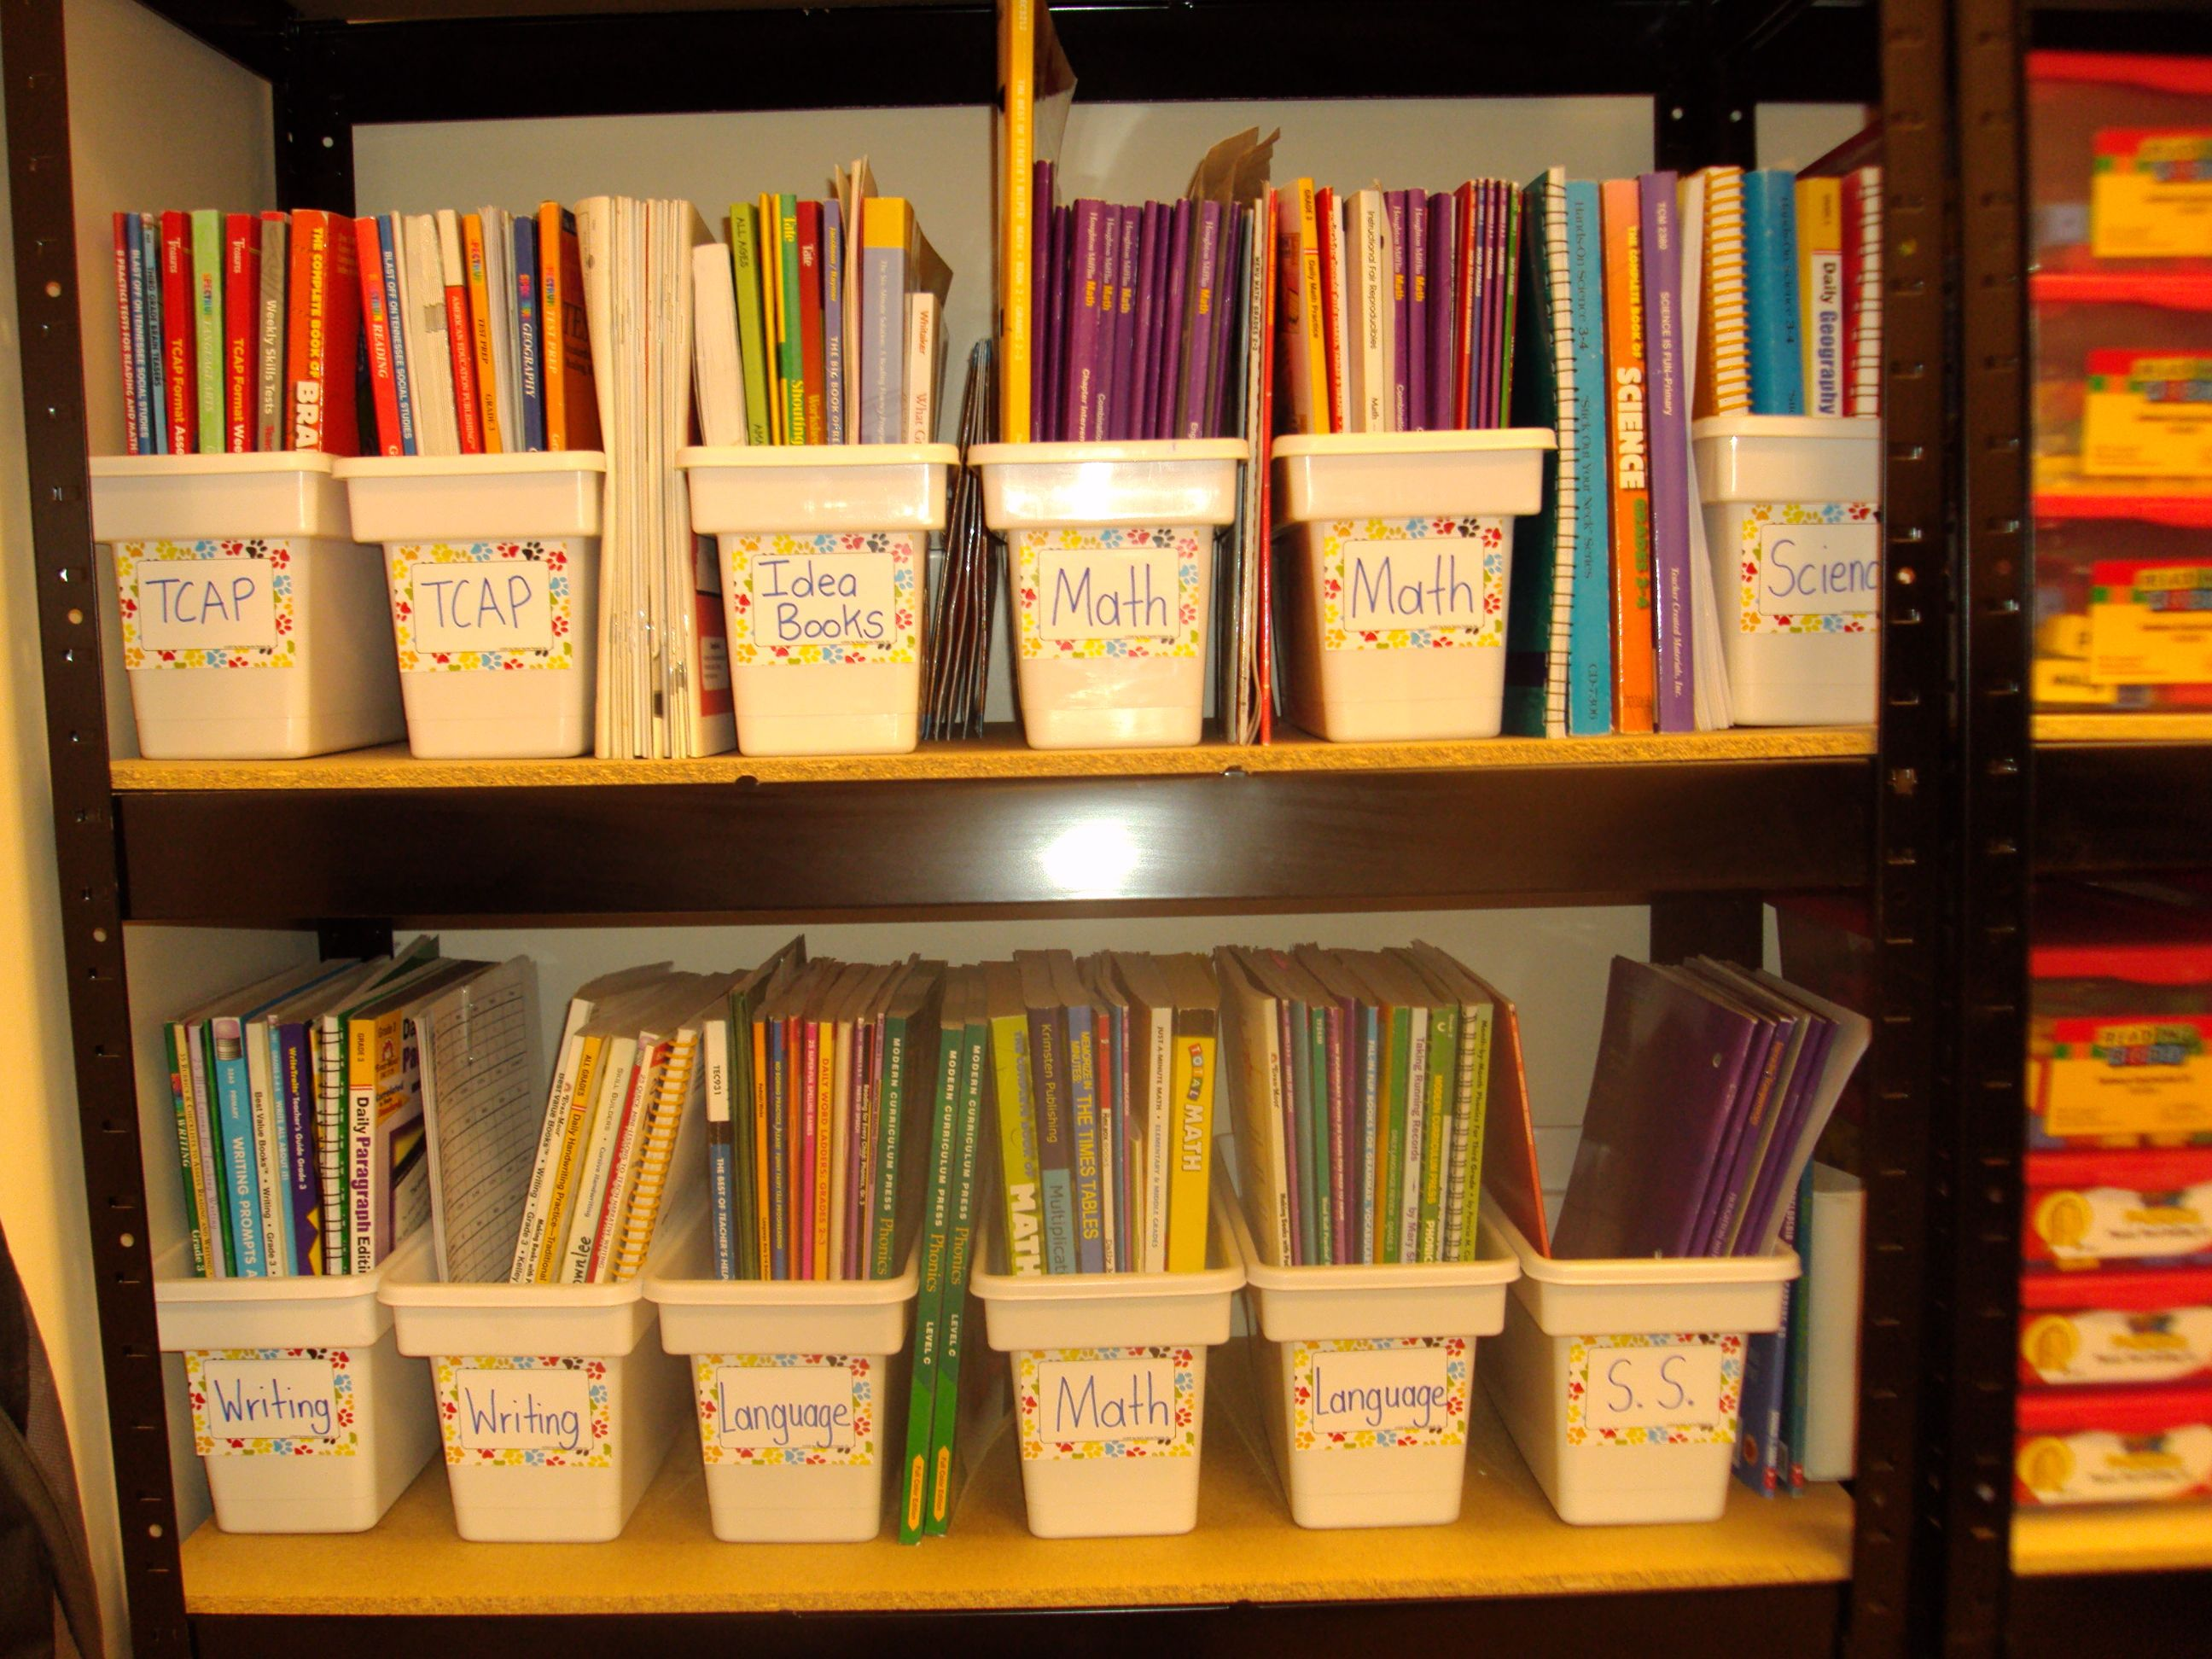 Wal-Mart ice bins for storage-- Book tubs for the classroom! & Wal-Mart ice bins for storage. Great for book tubs! @Starla Harlow ...